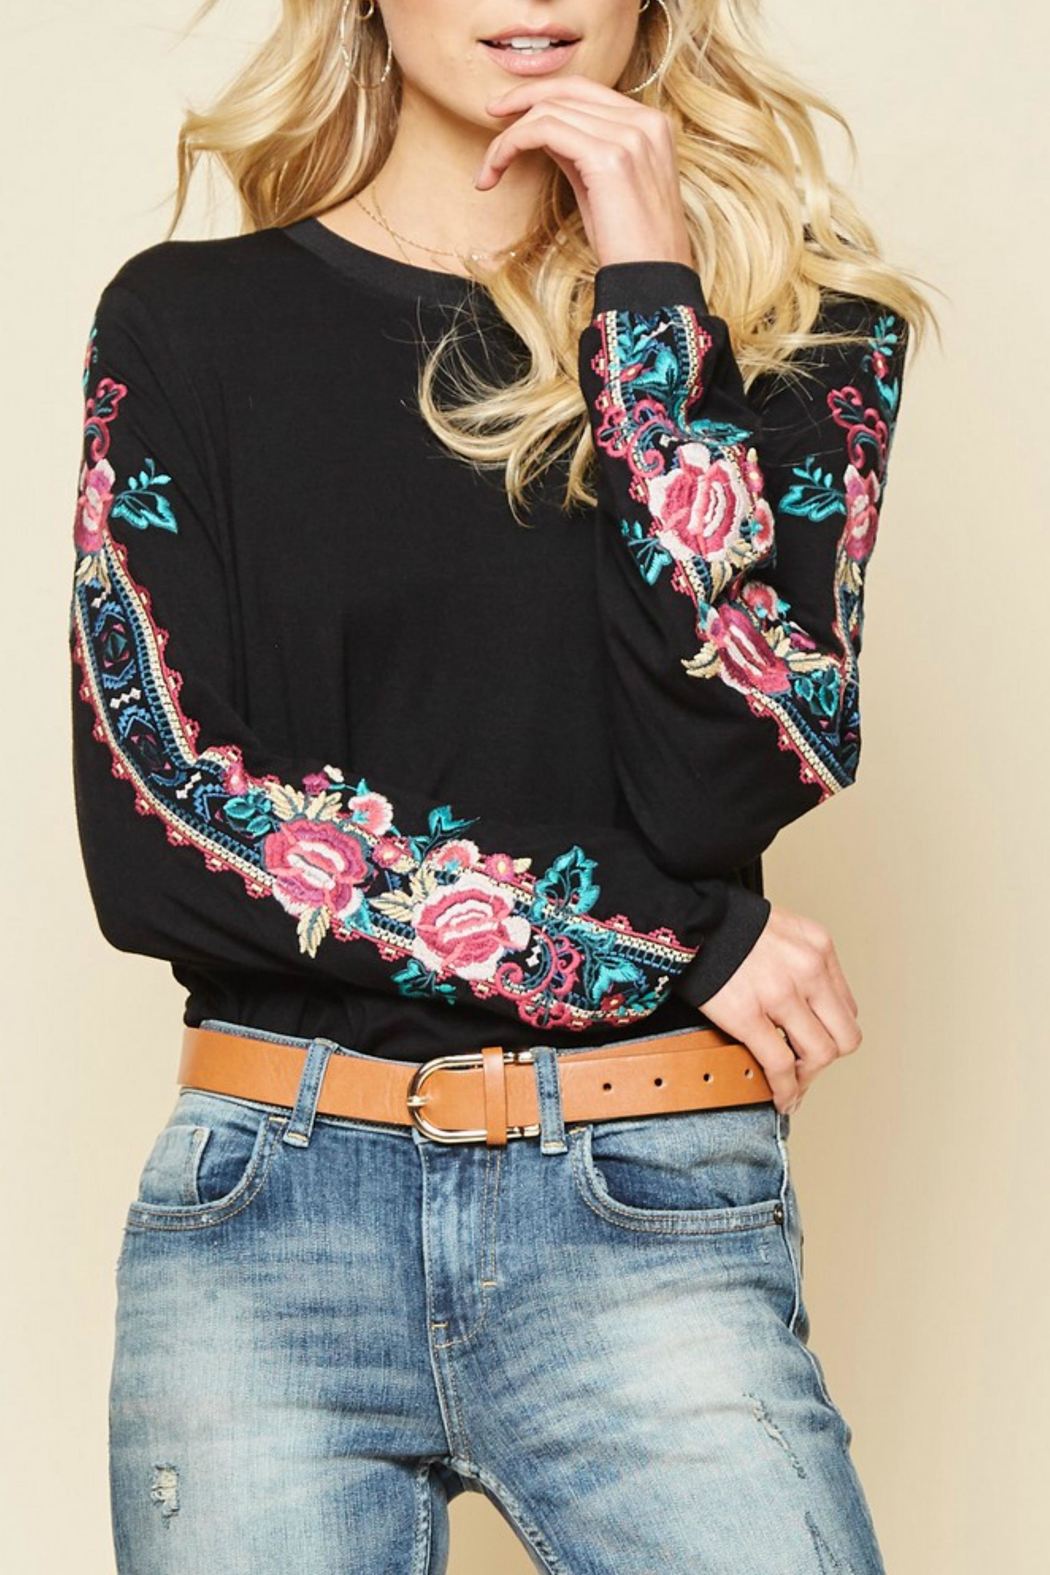 Andree by Unit Embroidered Sleeved Top - Main Image